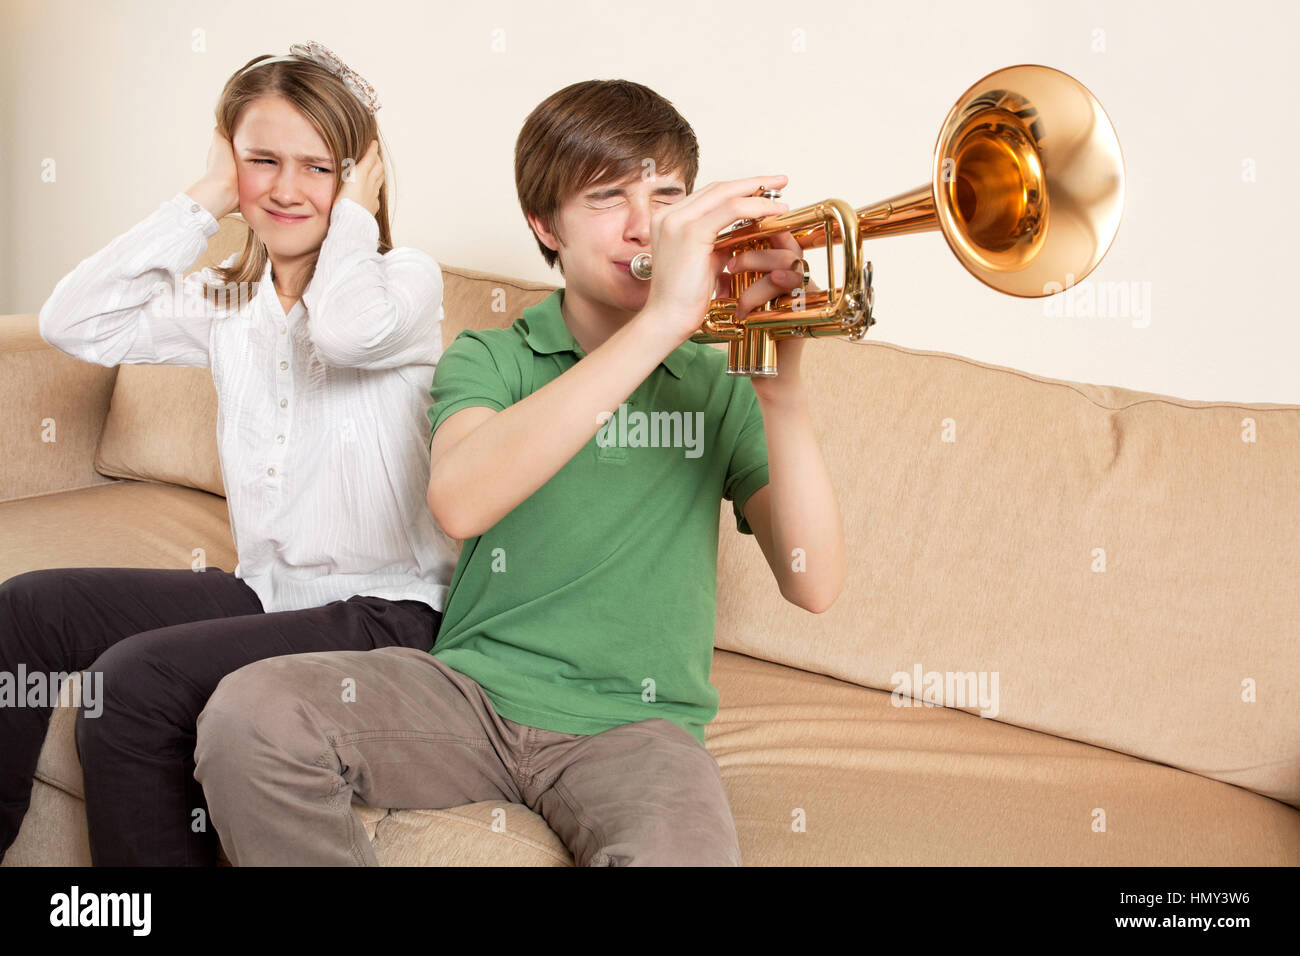 Photo of a brother playing his trumpet too loudly, or badly, and annoying his sister. Stock Photo